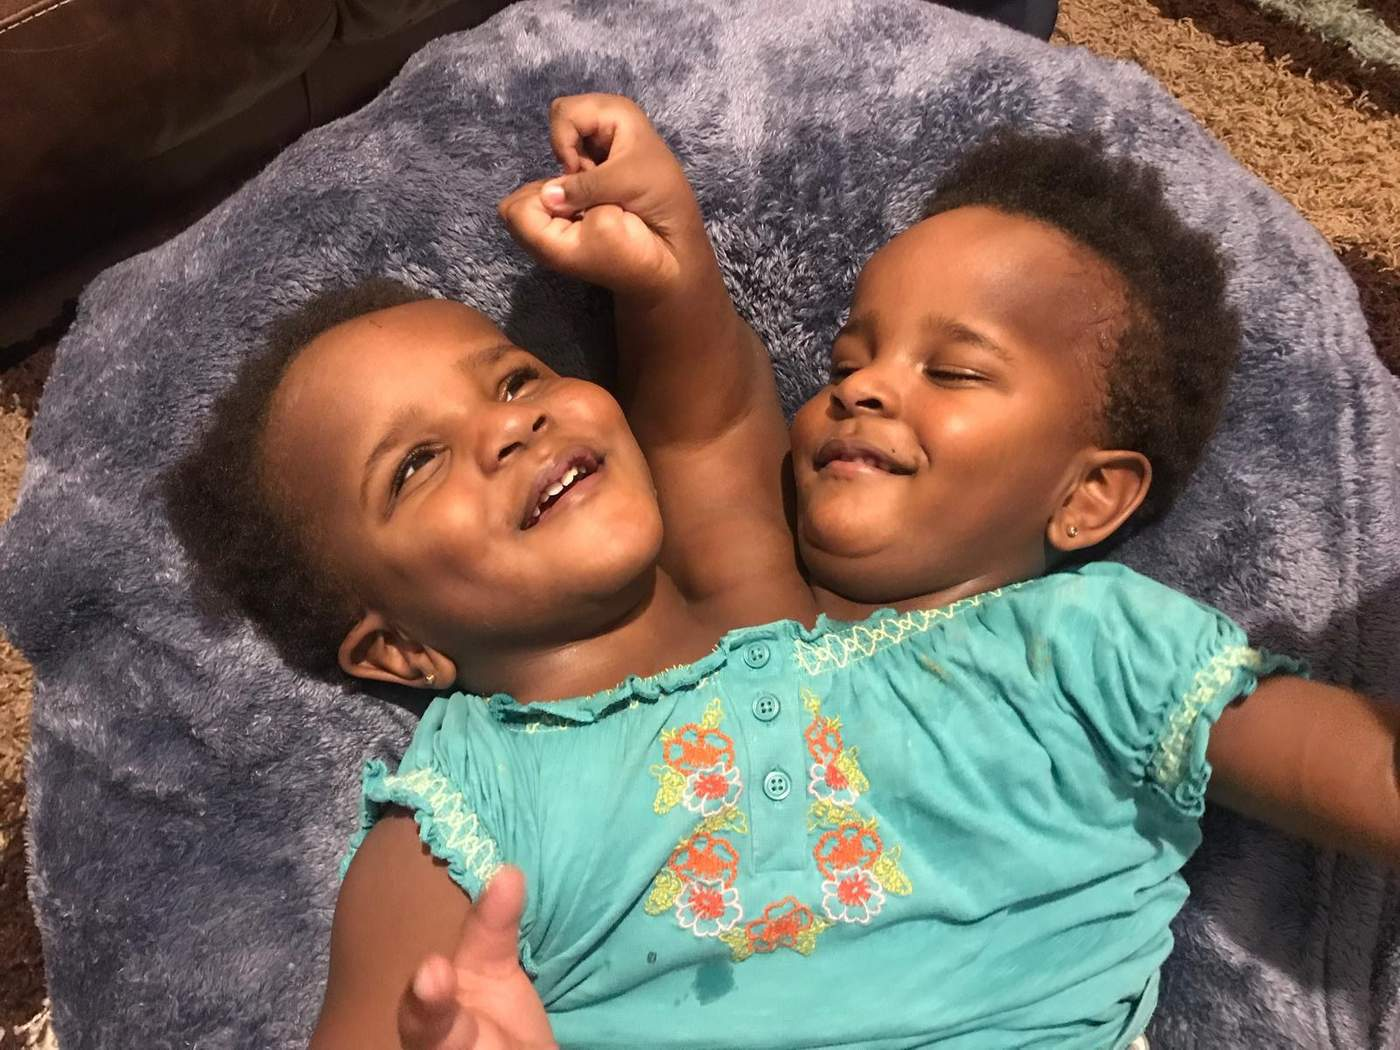 The conjoined twins whose fight for life took them from senegal to wales